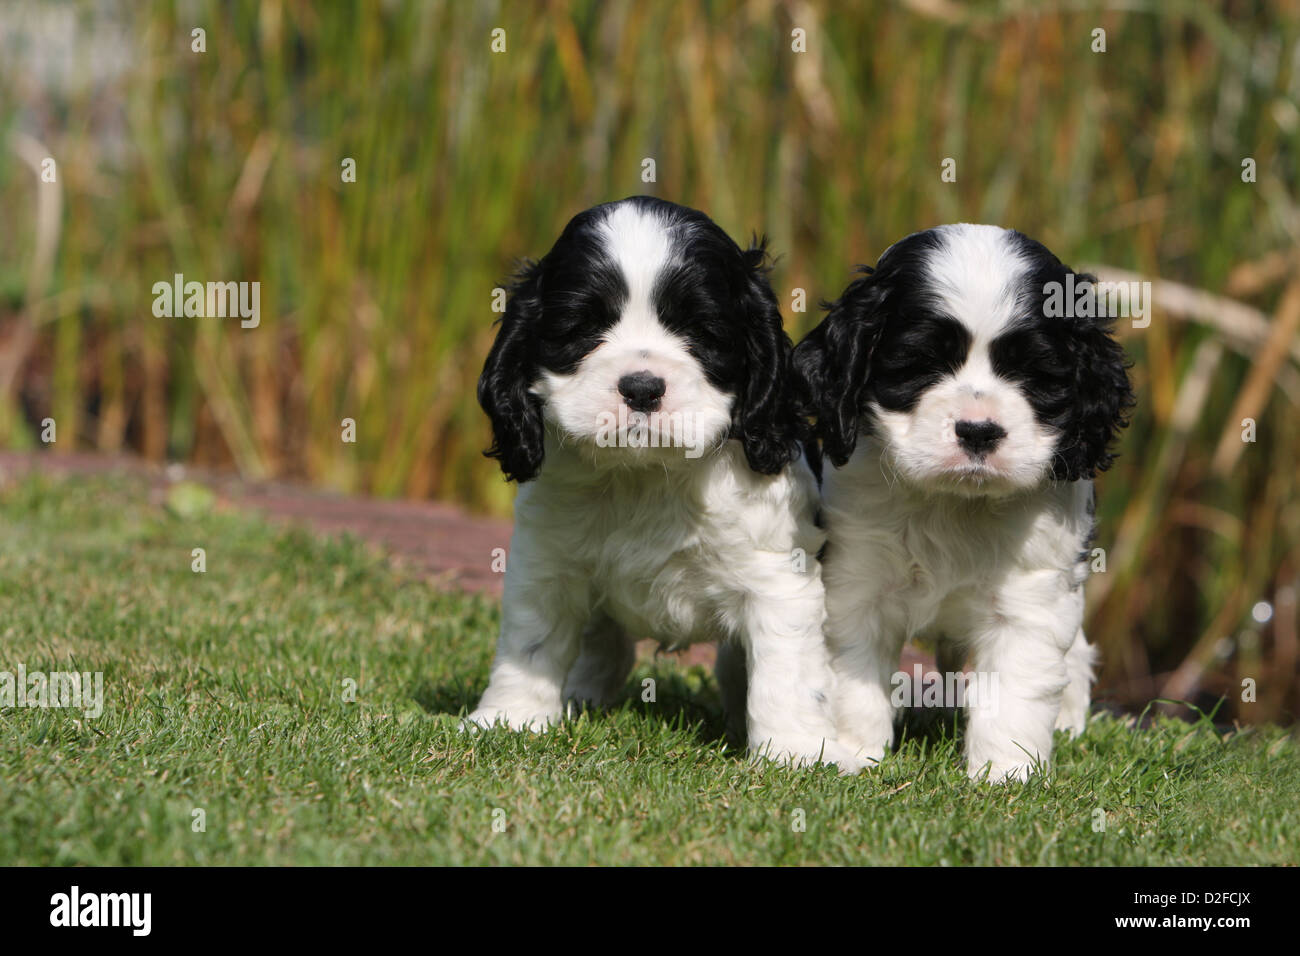 Dog American Cocker Spaniel Two Puppies Black And White Standing On Stock Photo Alamy